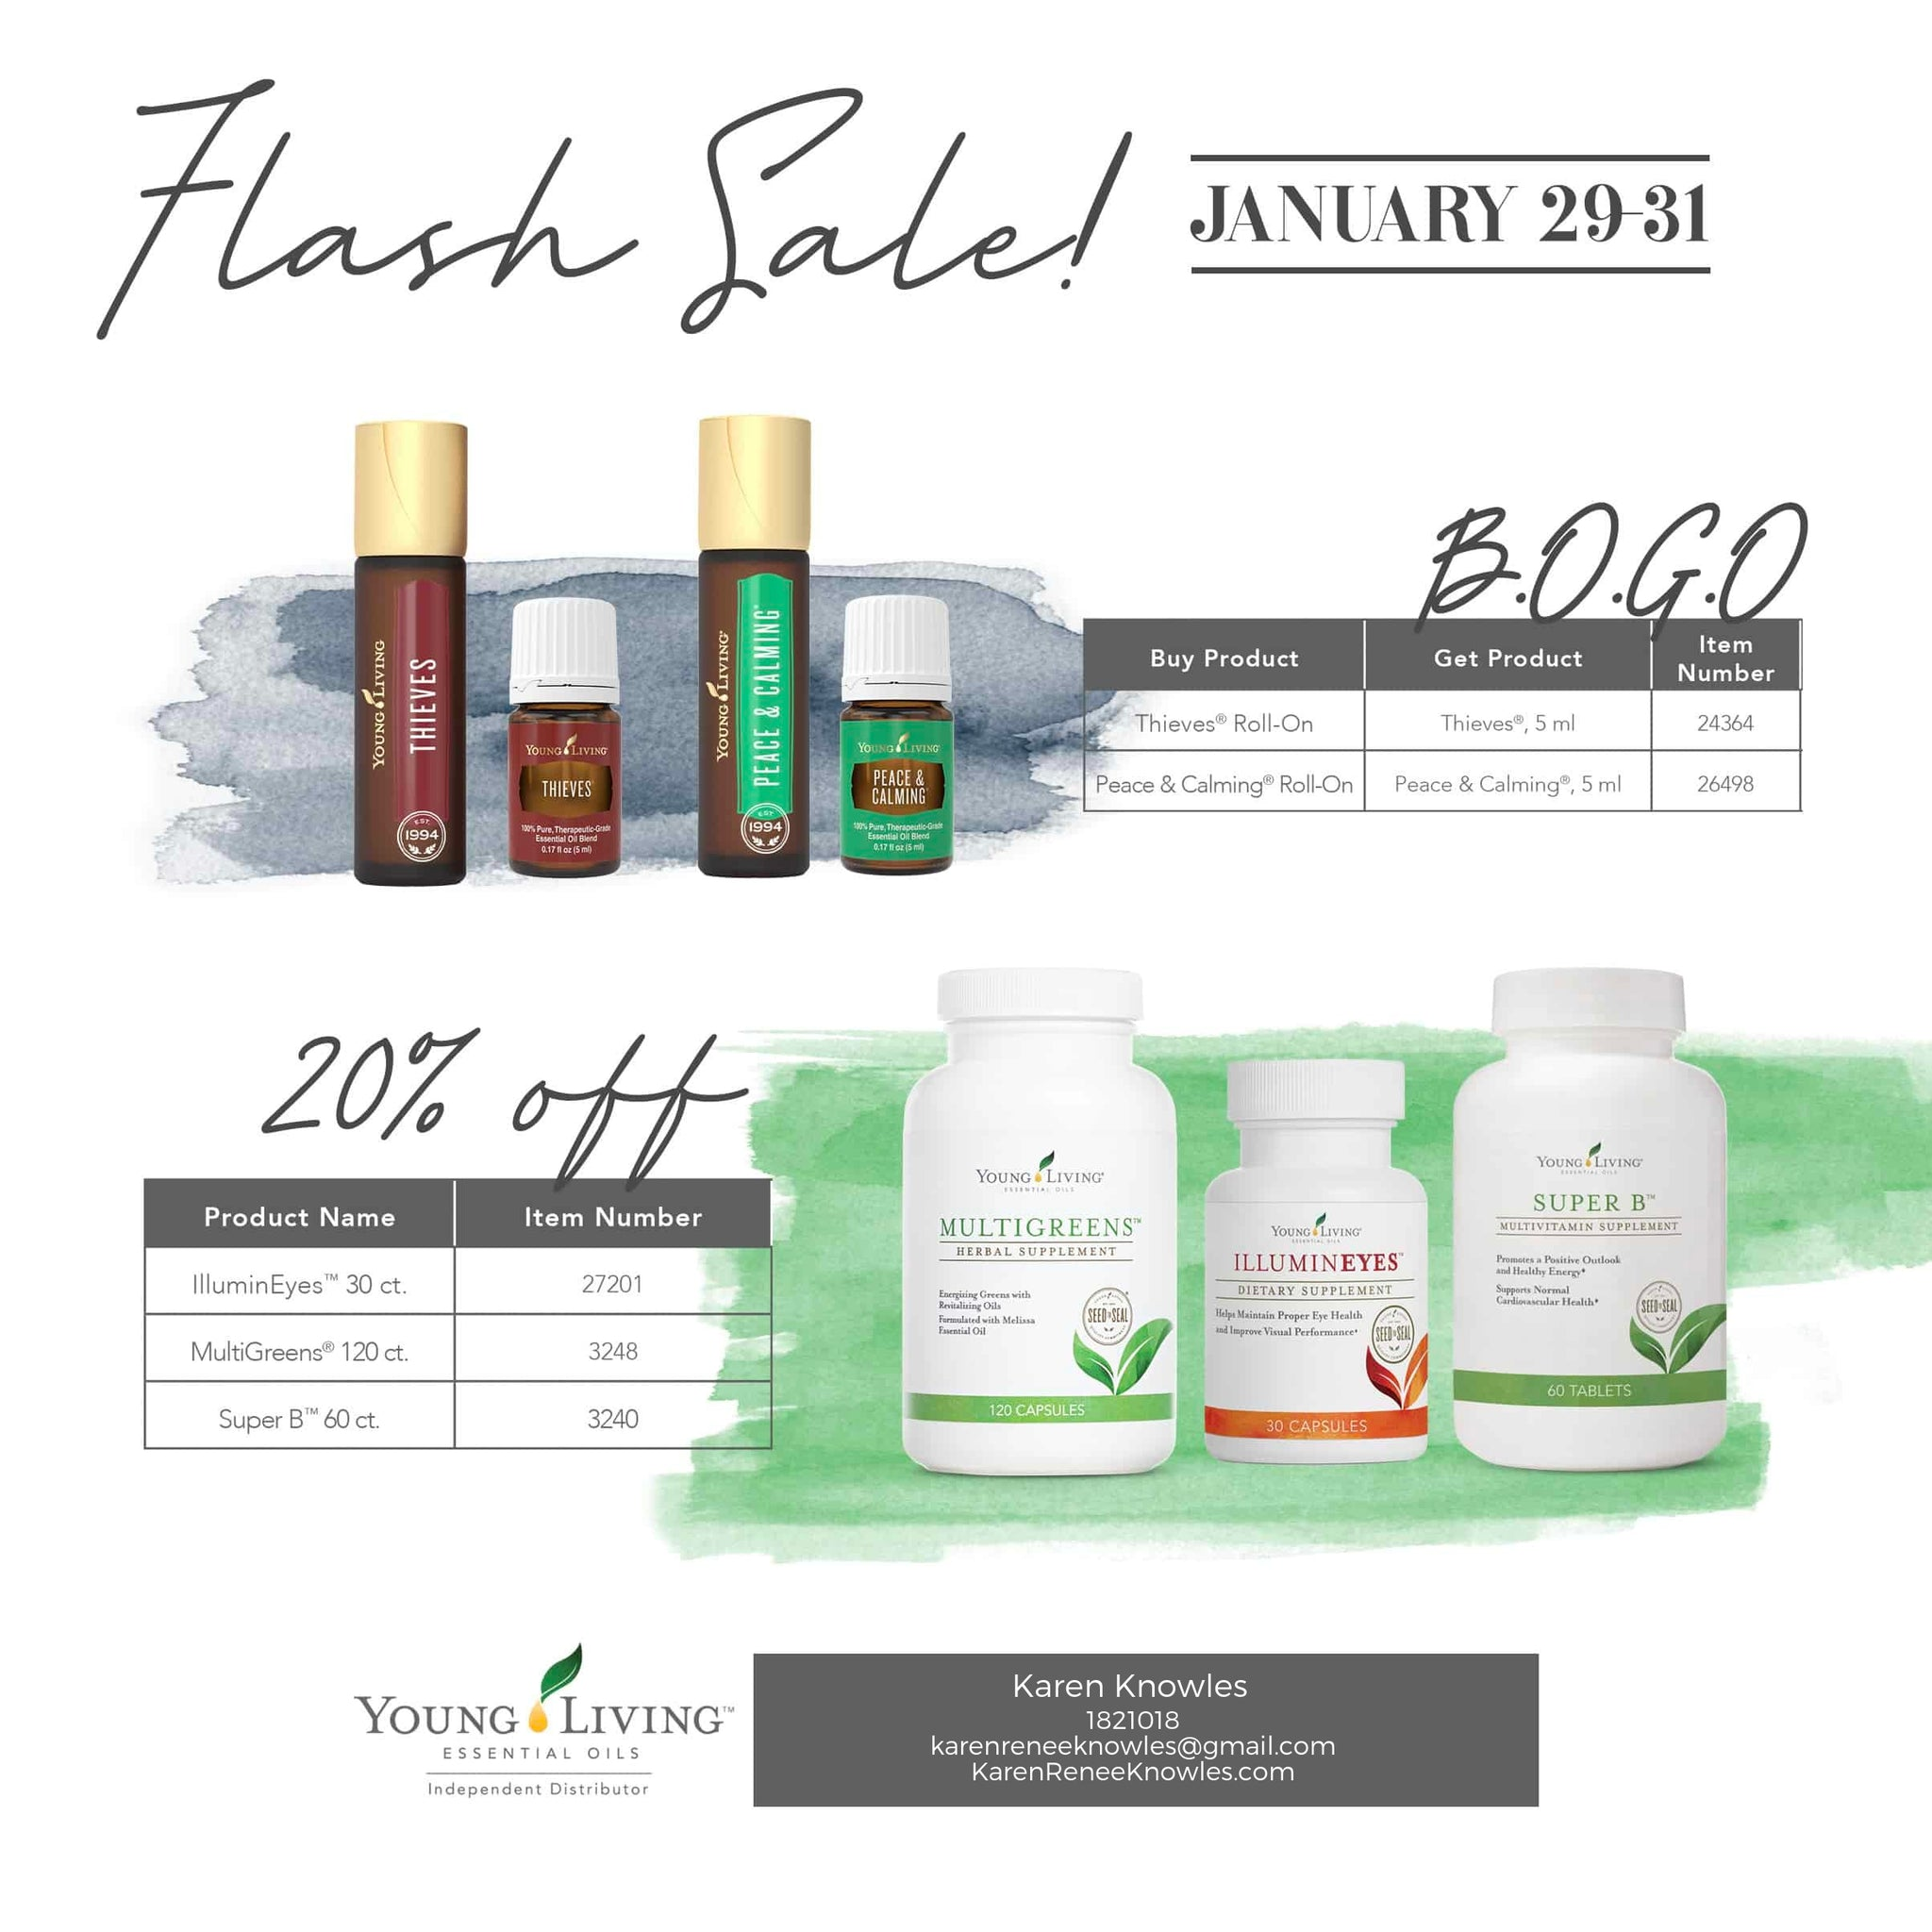 Don't miss out on YOUNG LIVING'S FLASH SALE!! Ends the 31st